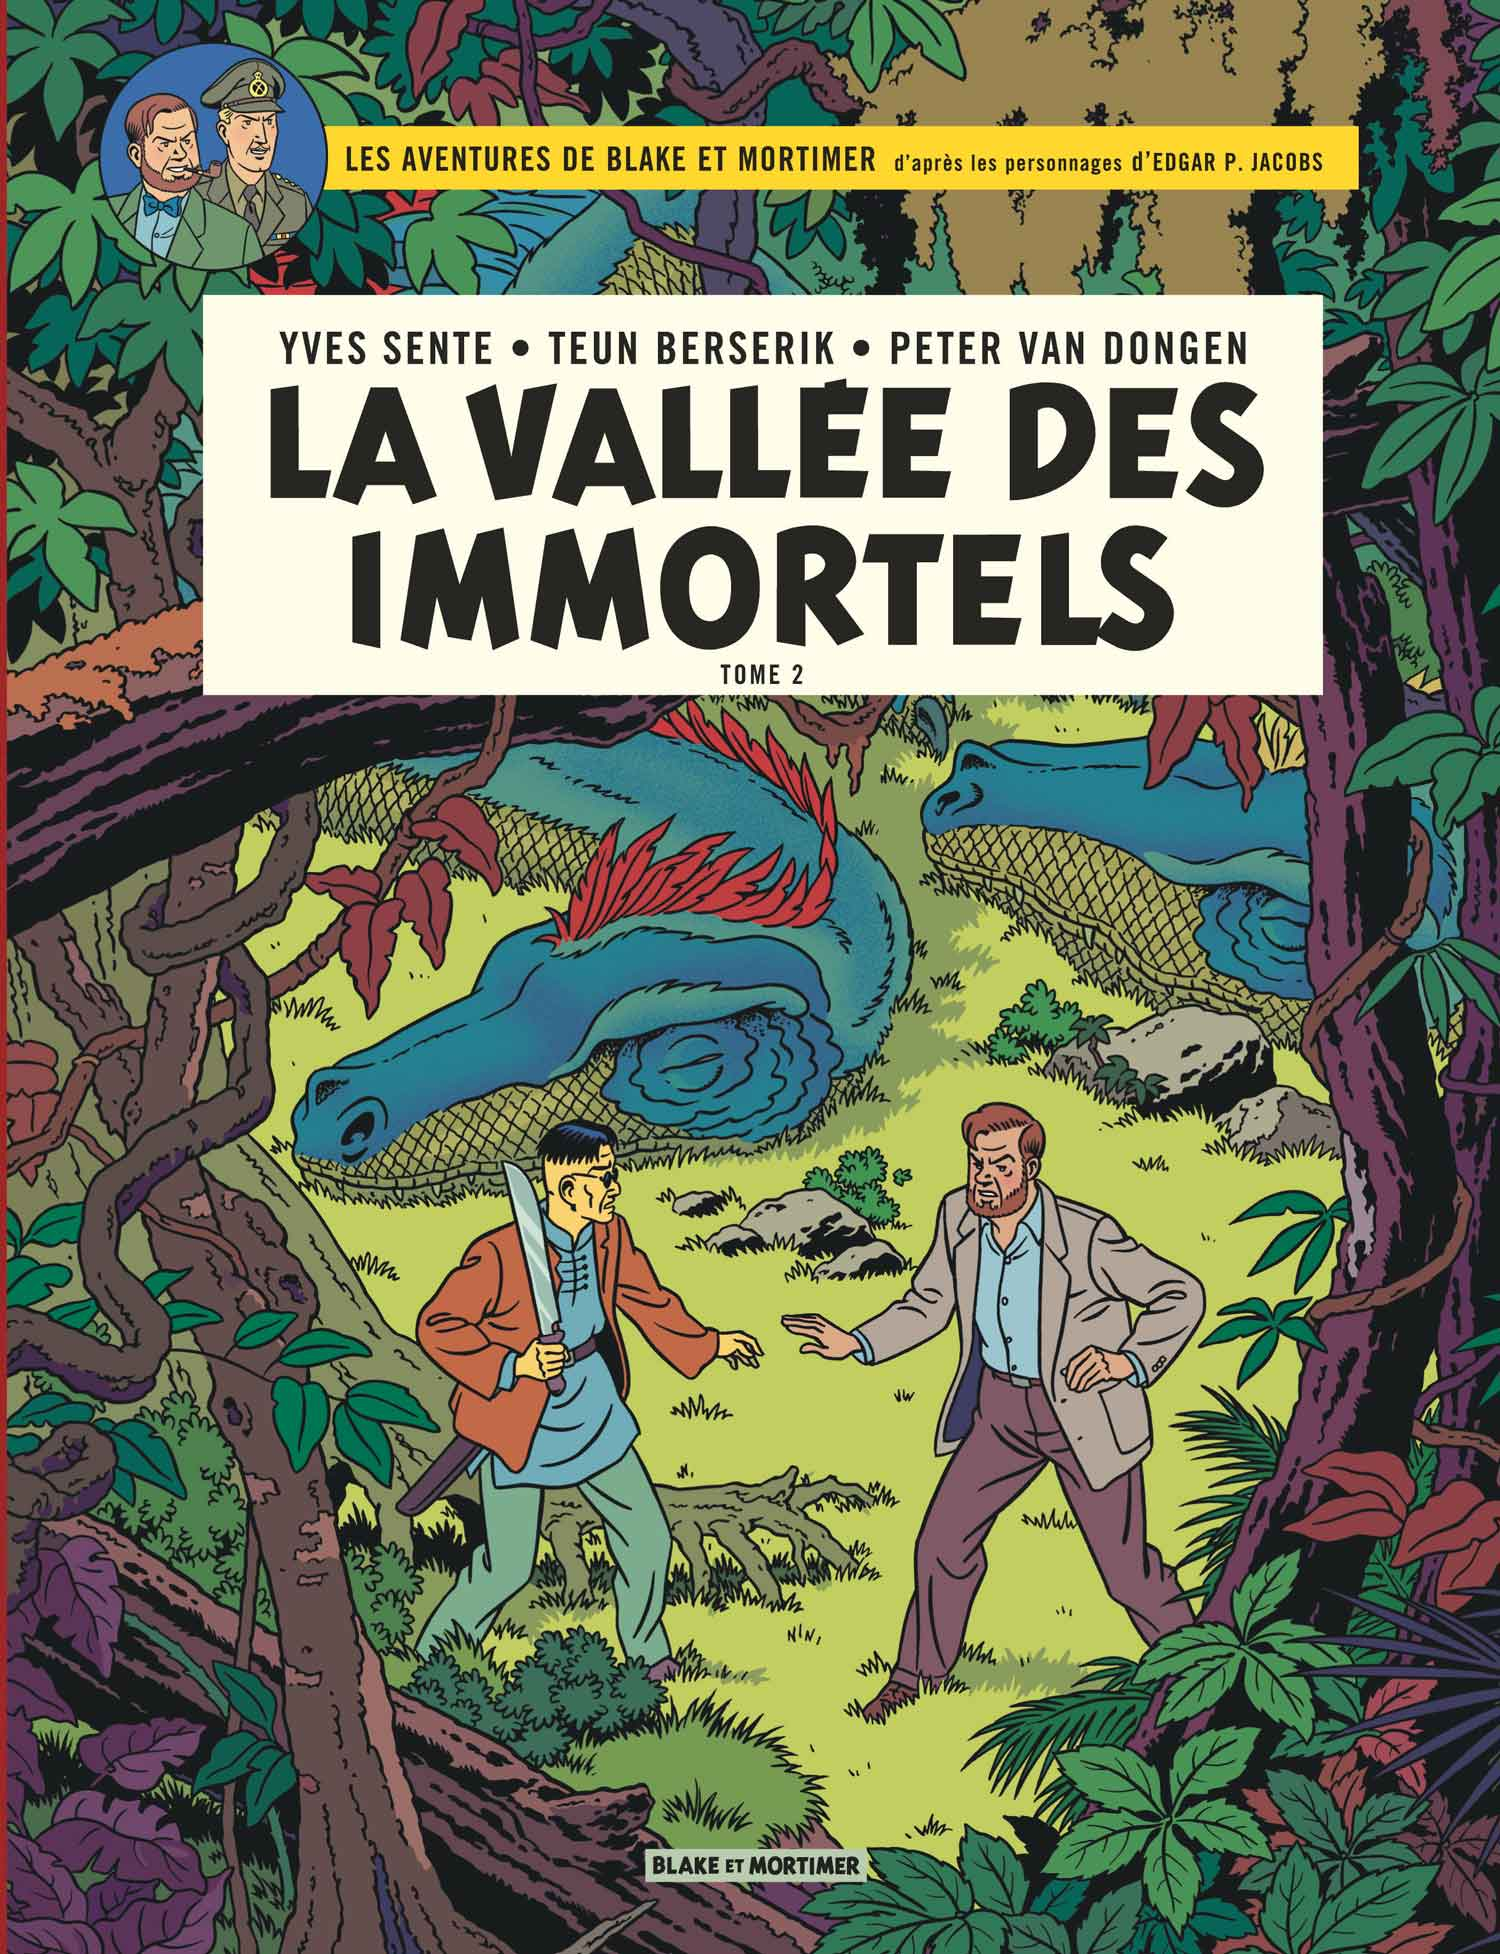 vallee-immortels-couv